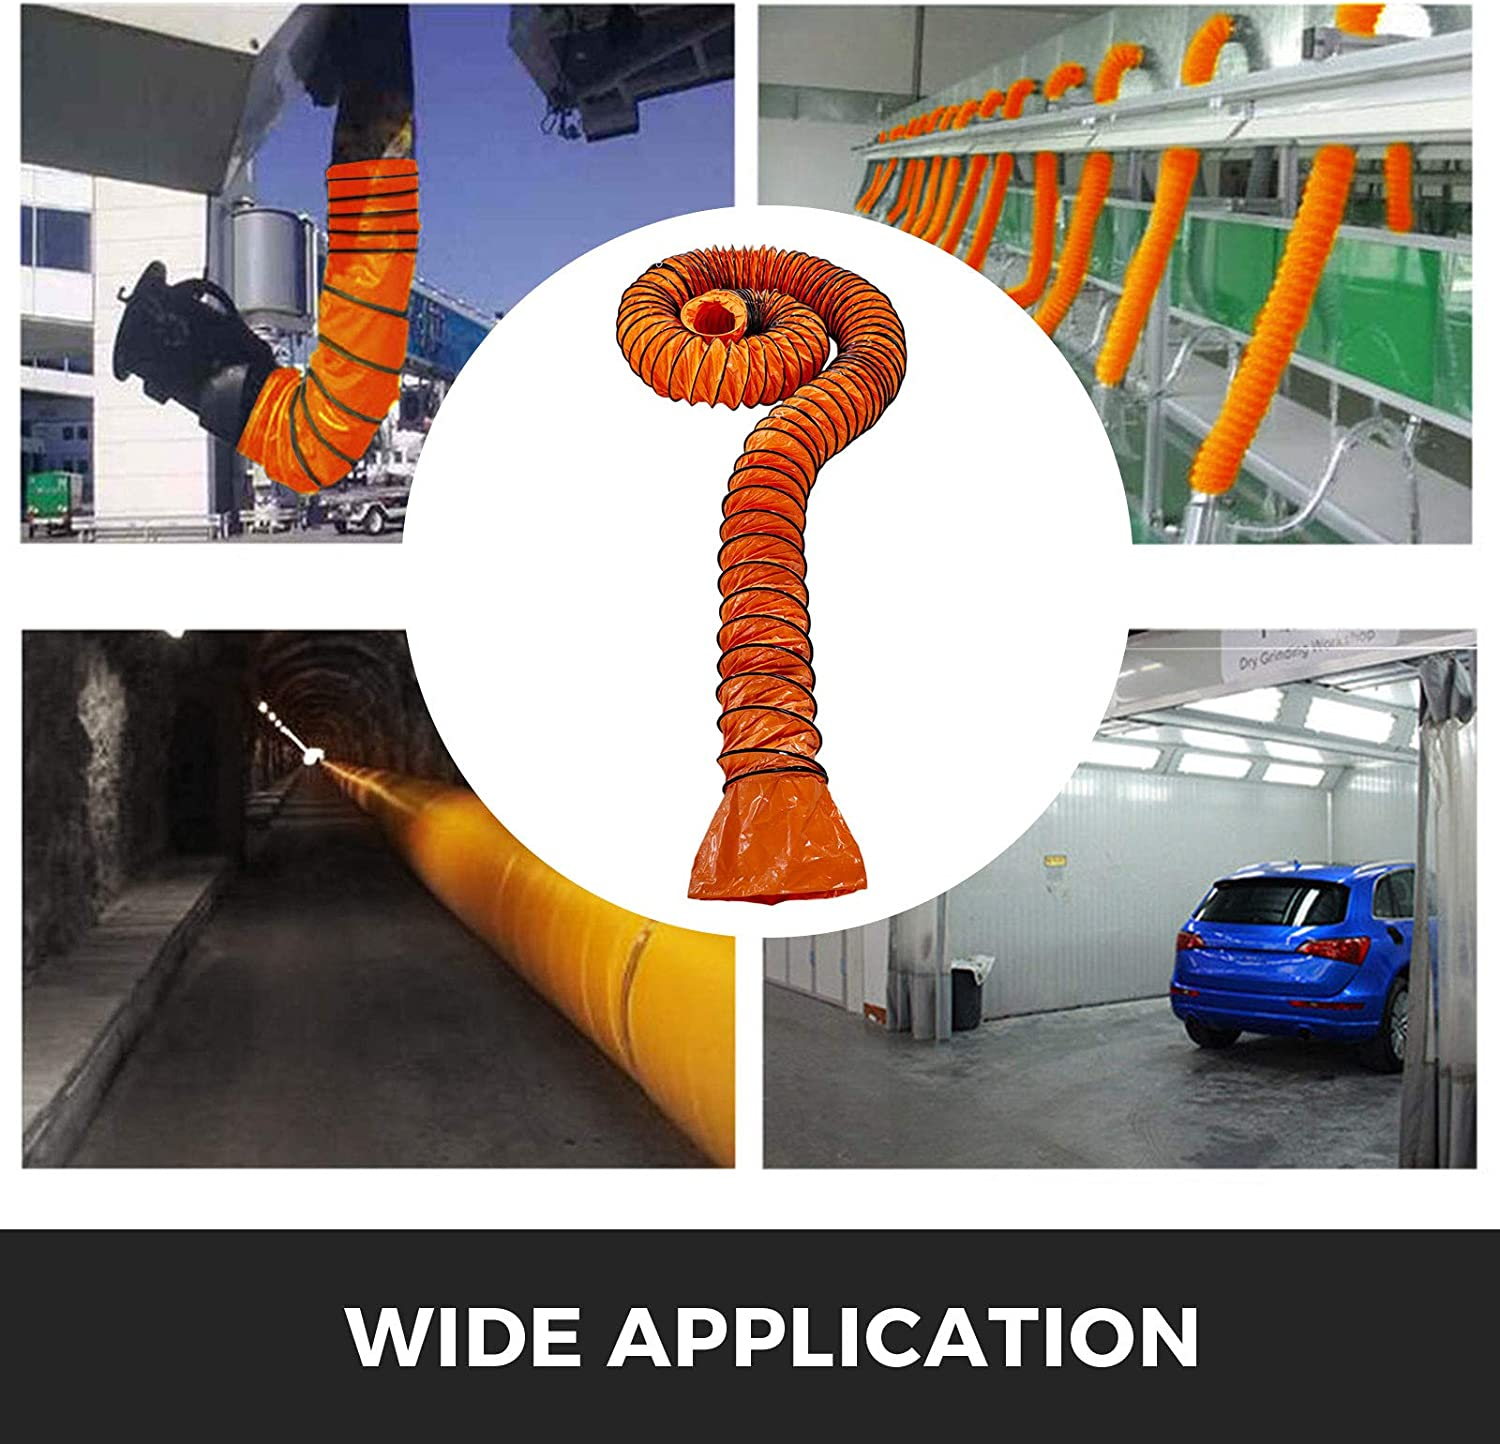 FlowerW Duct Hosing 49 Ft PVC Ducting 6 Inch Flexible Hosing 0.011 Inch Flexible PVC Ducting for Duct Fans and Vent Exhausts in Factories Basements Farms Chemical Tunnel Automobile Manufacturing